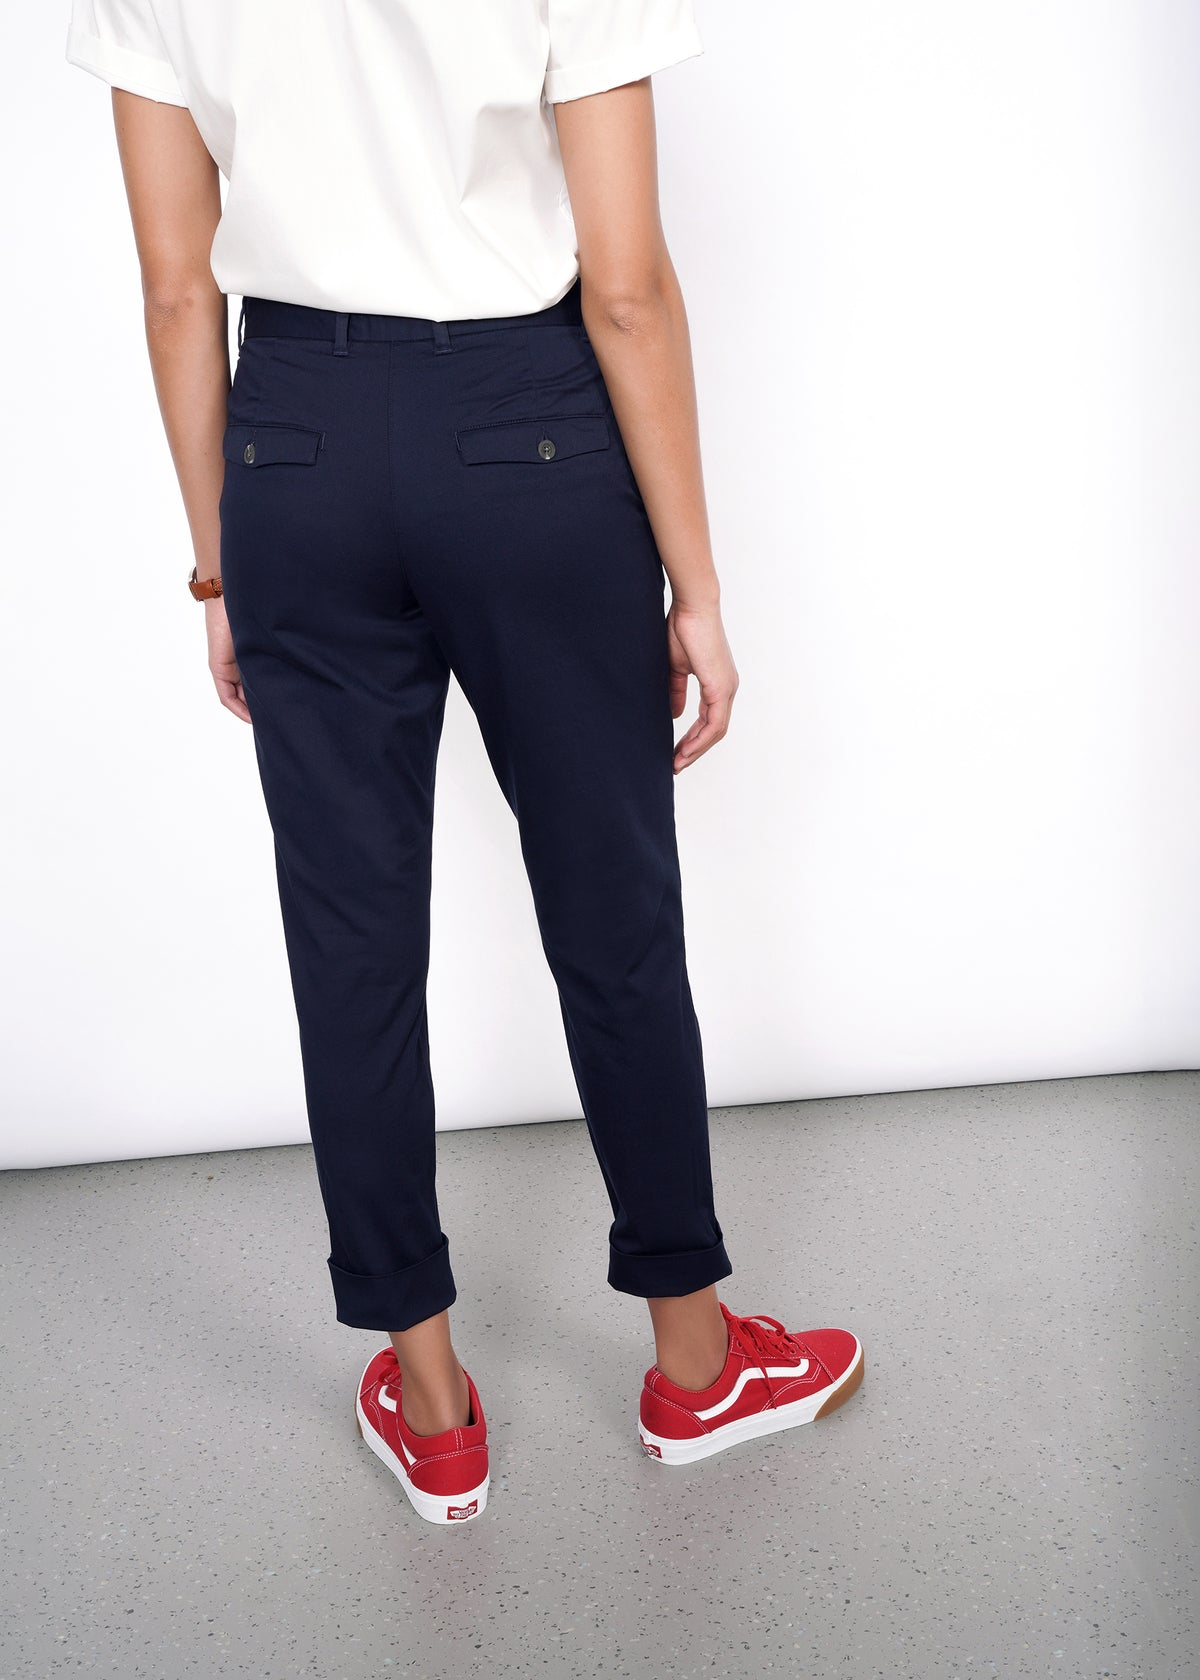 Backside of model wearing mid rise tailored trouser in navy size 4, cuffed, with white button up tucked in, and two back button pockets